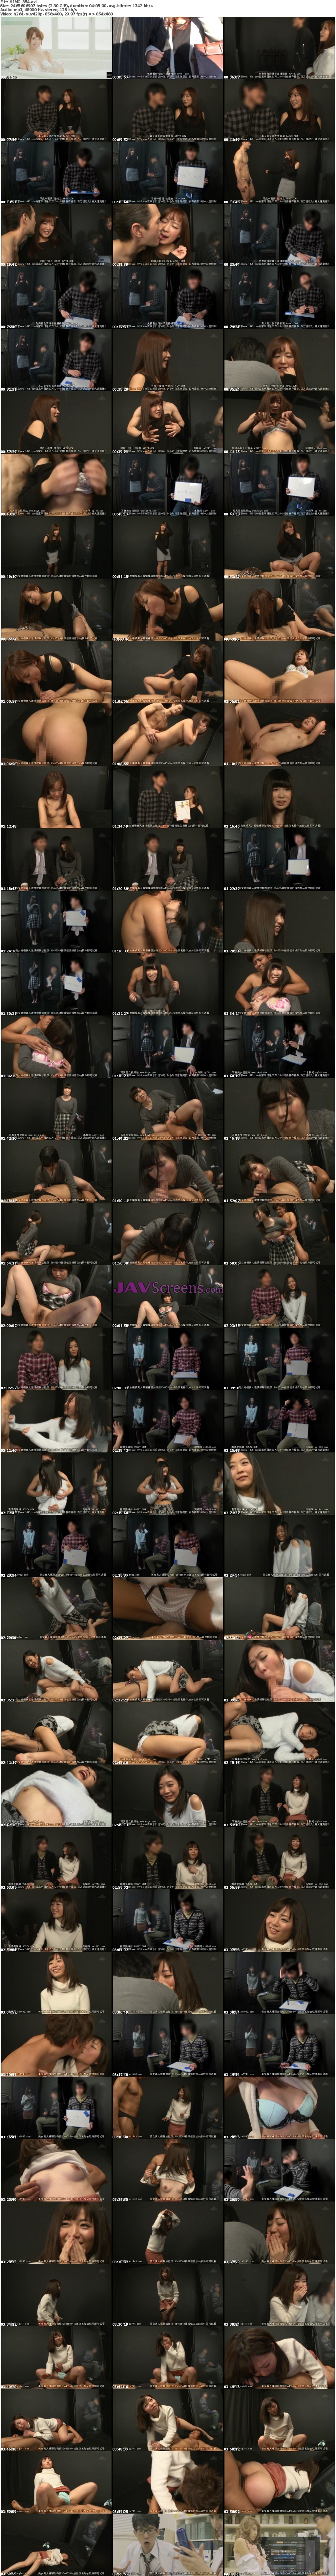 HJMO-354.jpg - JAV Screenshot